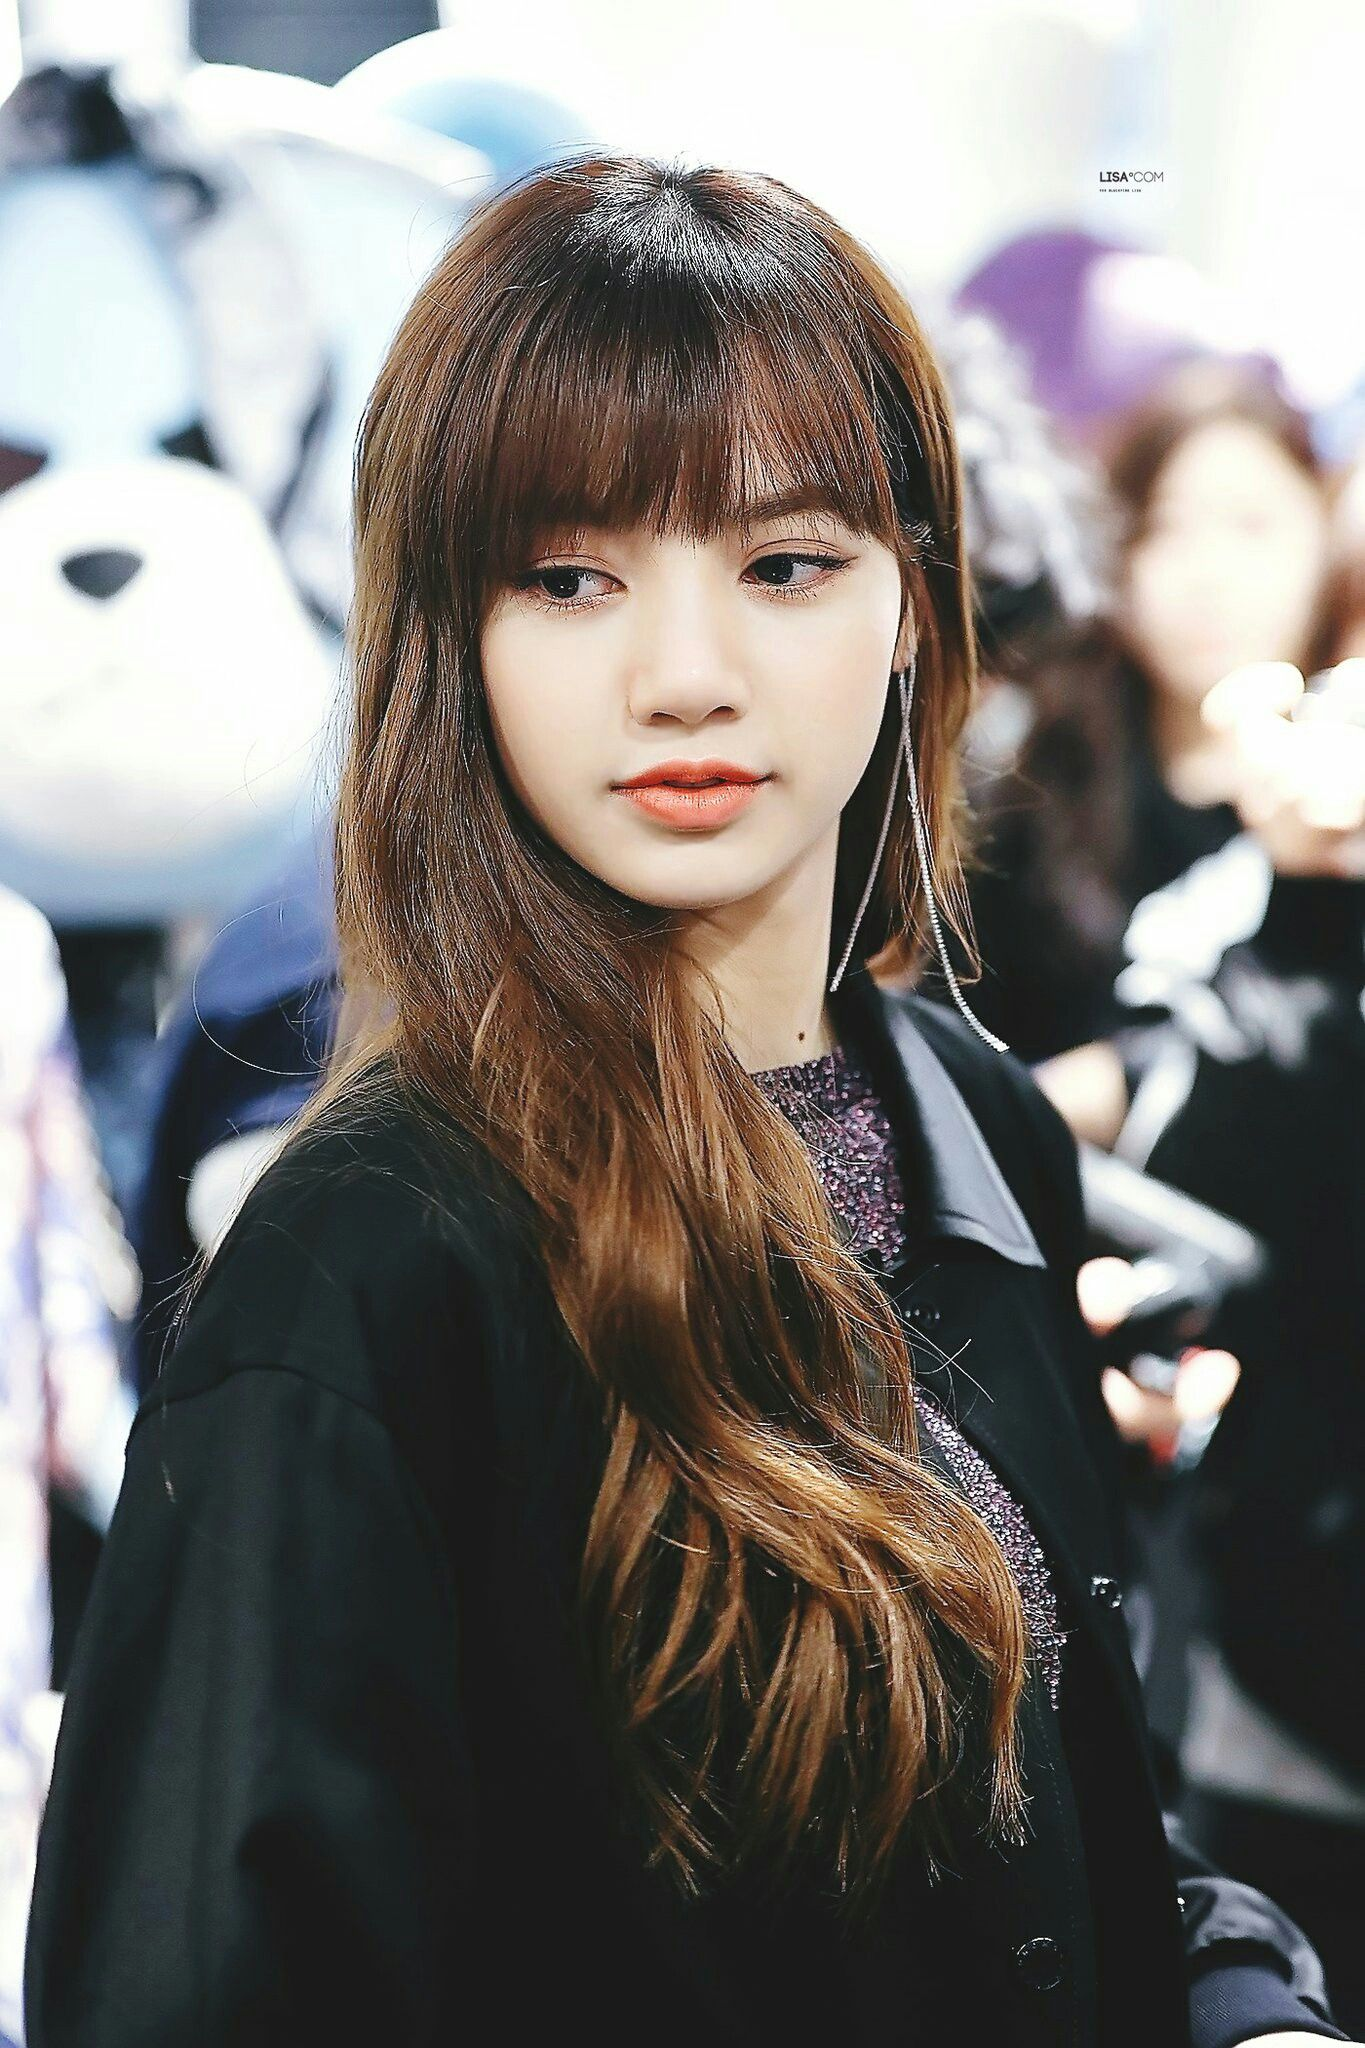 blackpink lisa at nonagon fanmeeting everything beauty in 2018